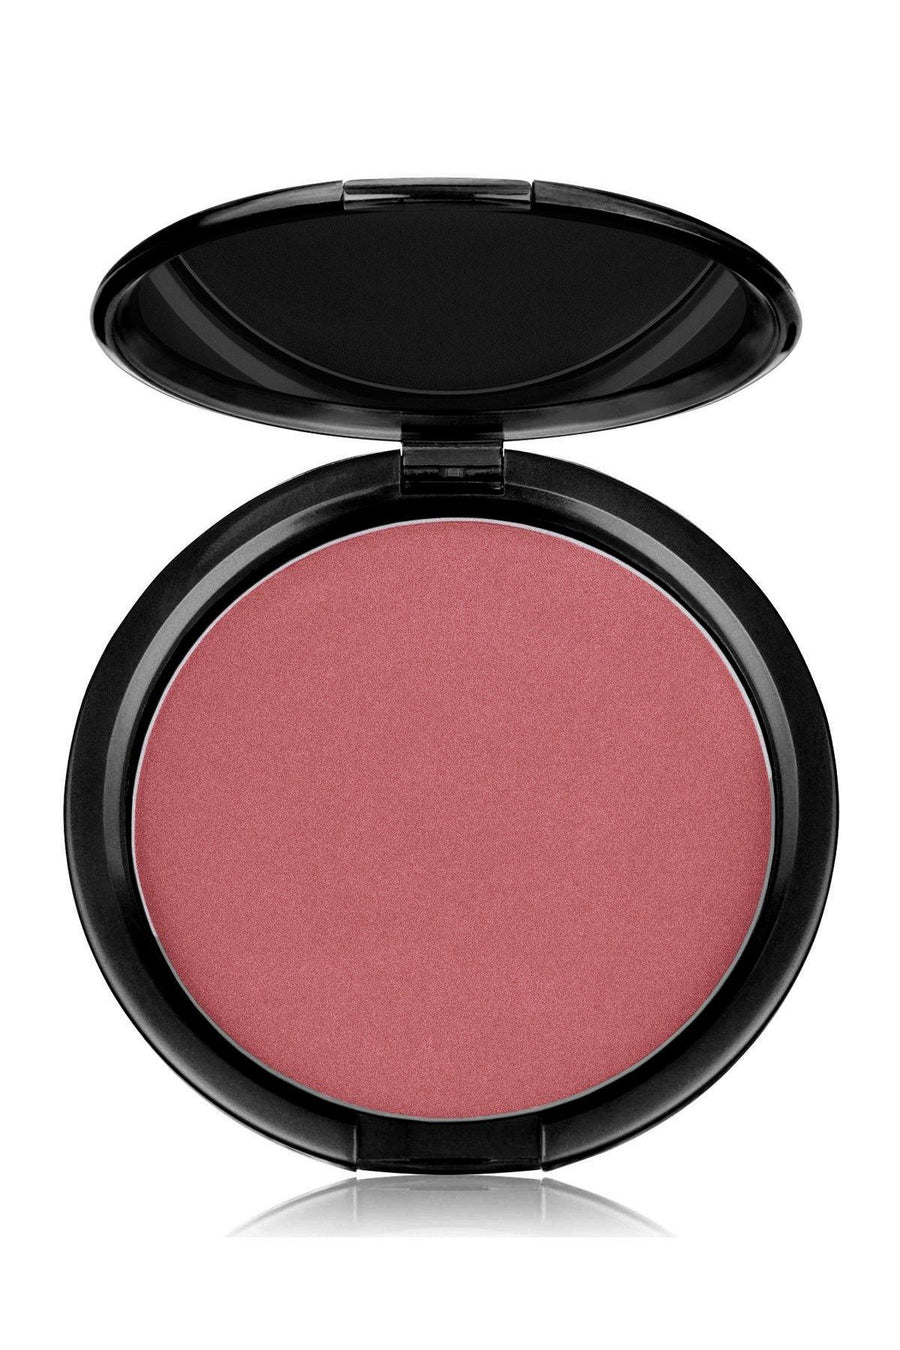 Blush Mineral Pressed Powder & Brush Set - Pink Tone - Blend Mineral Cosmetics